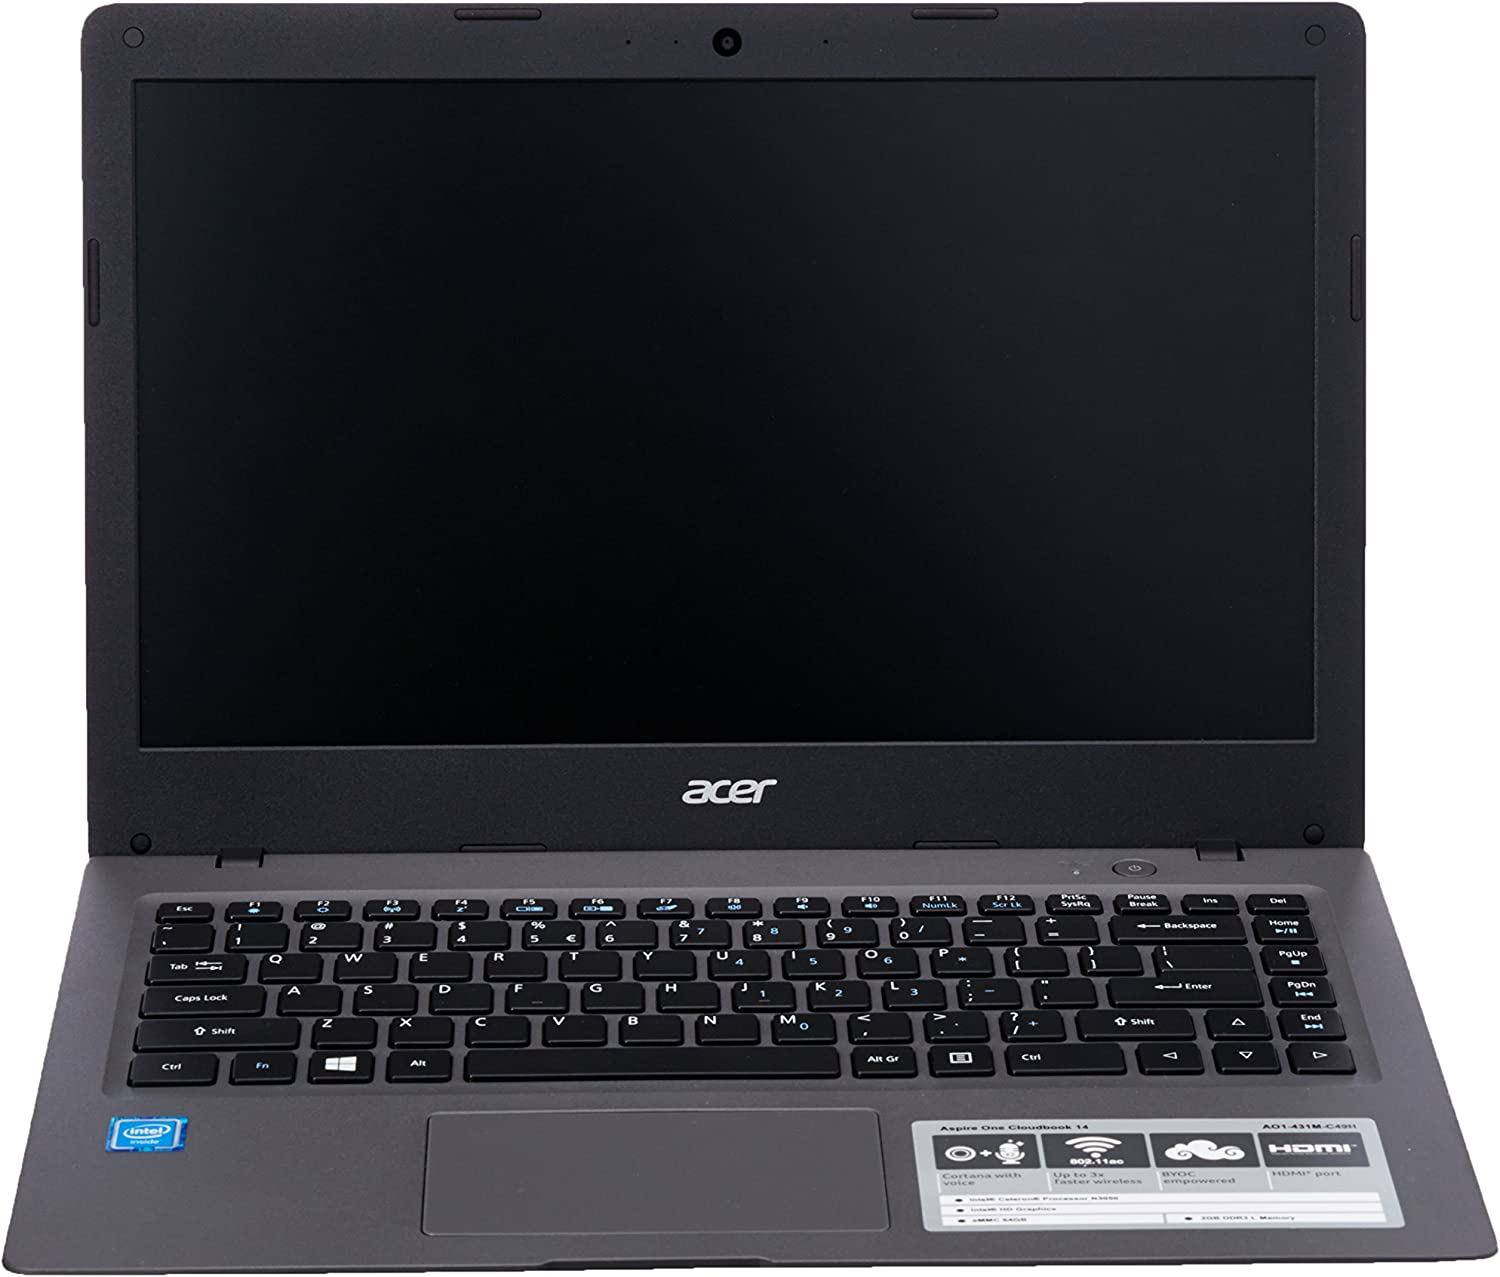 Acer Aspire One Cloudbook NX.SHJAA.002;AO1-431M-C49H Laptop (Windows 10 Pro 64, Intel Celeron N3050 / 1.6 GHz, 14